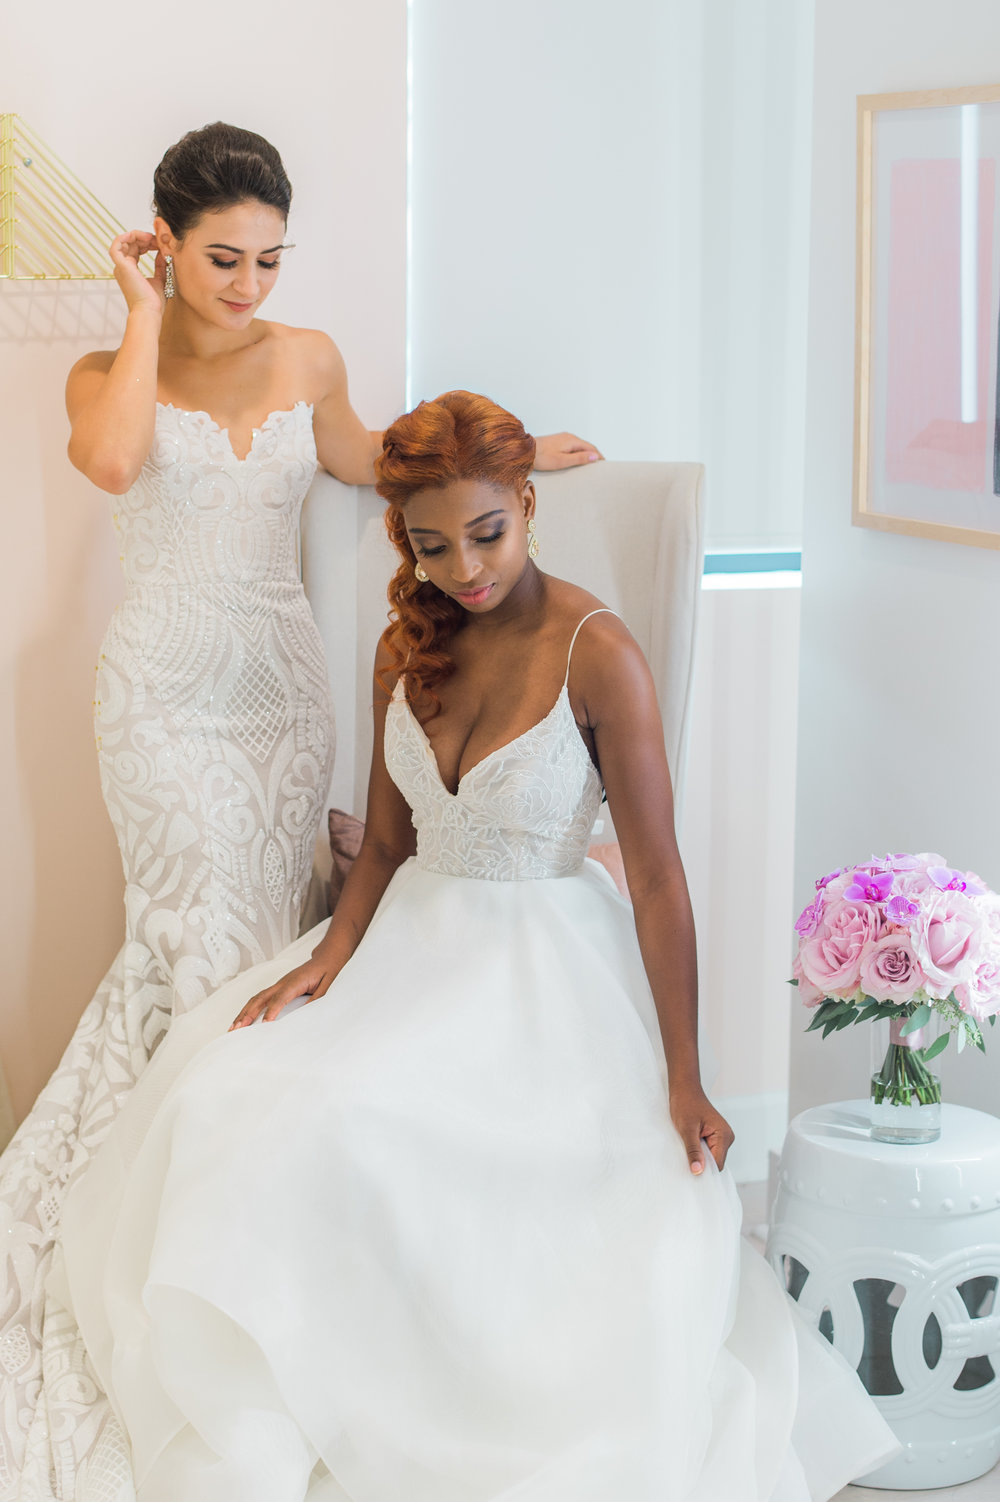 luck love photography - northern virginia wedding photographer - the bridal room va - the dresses-47.jpg